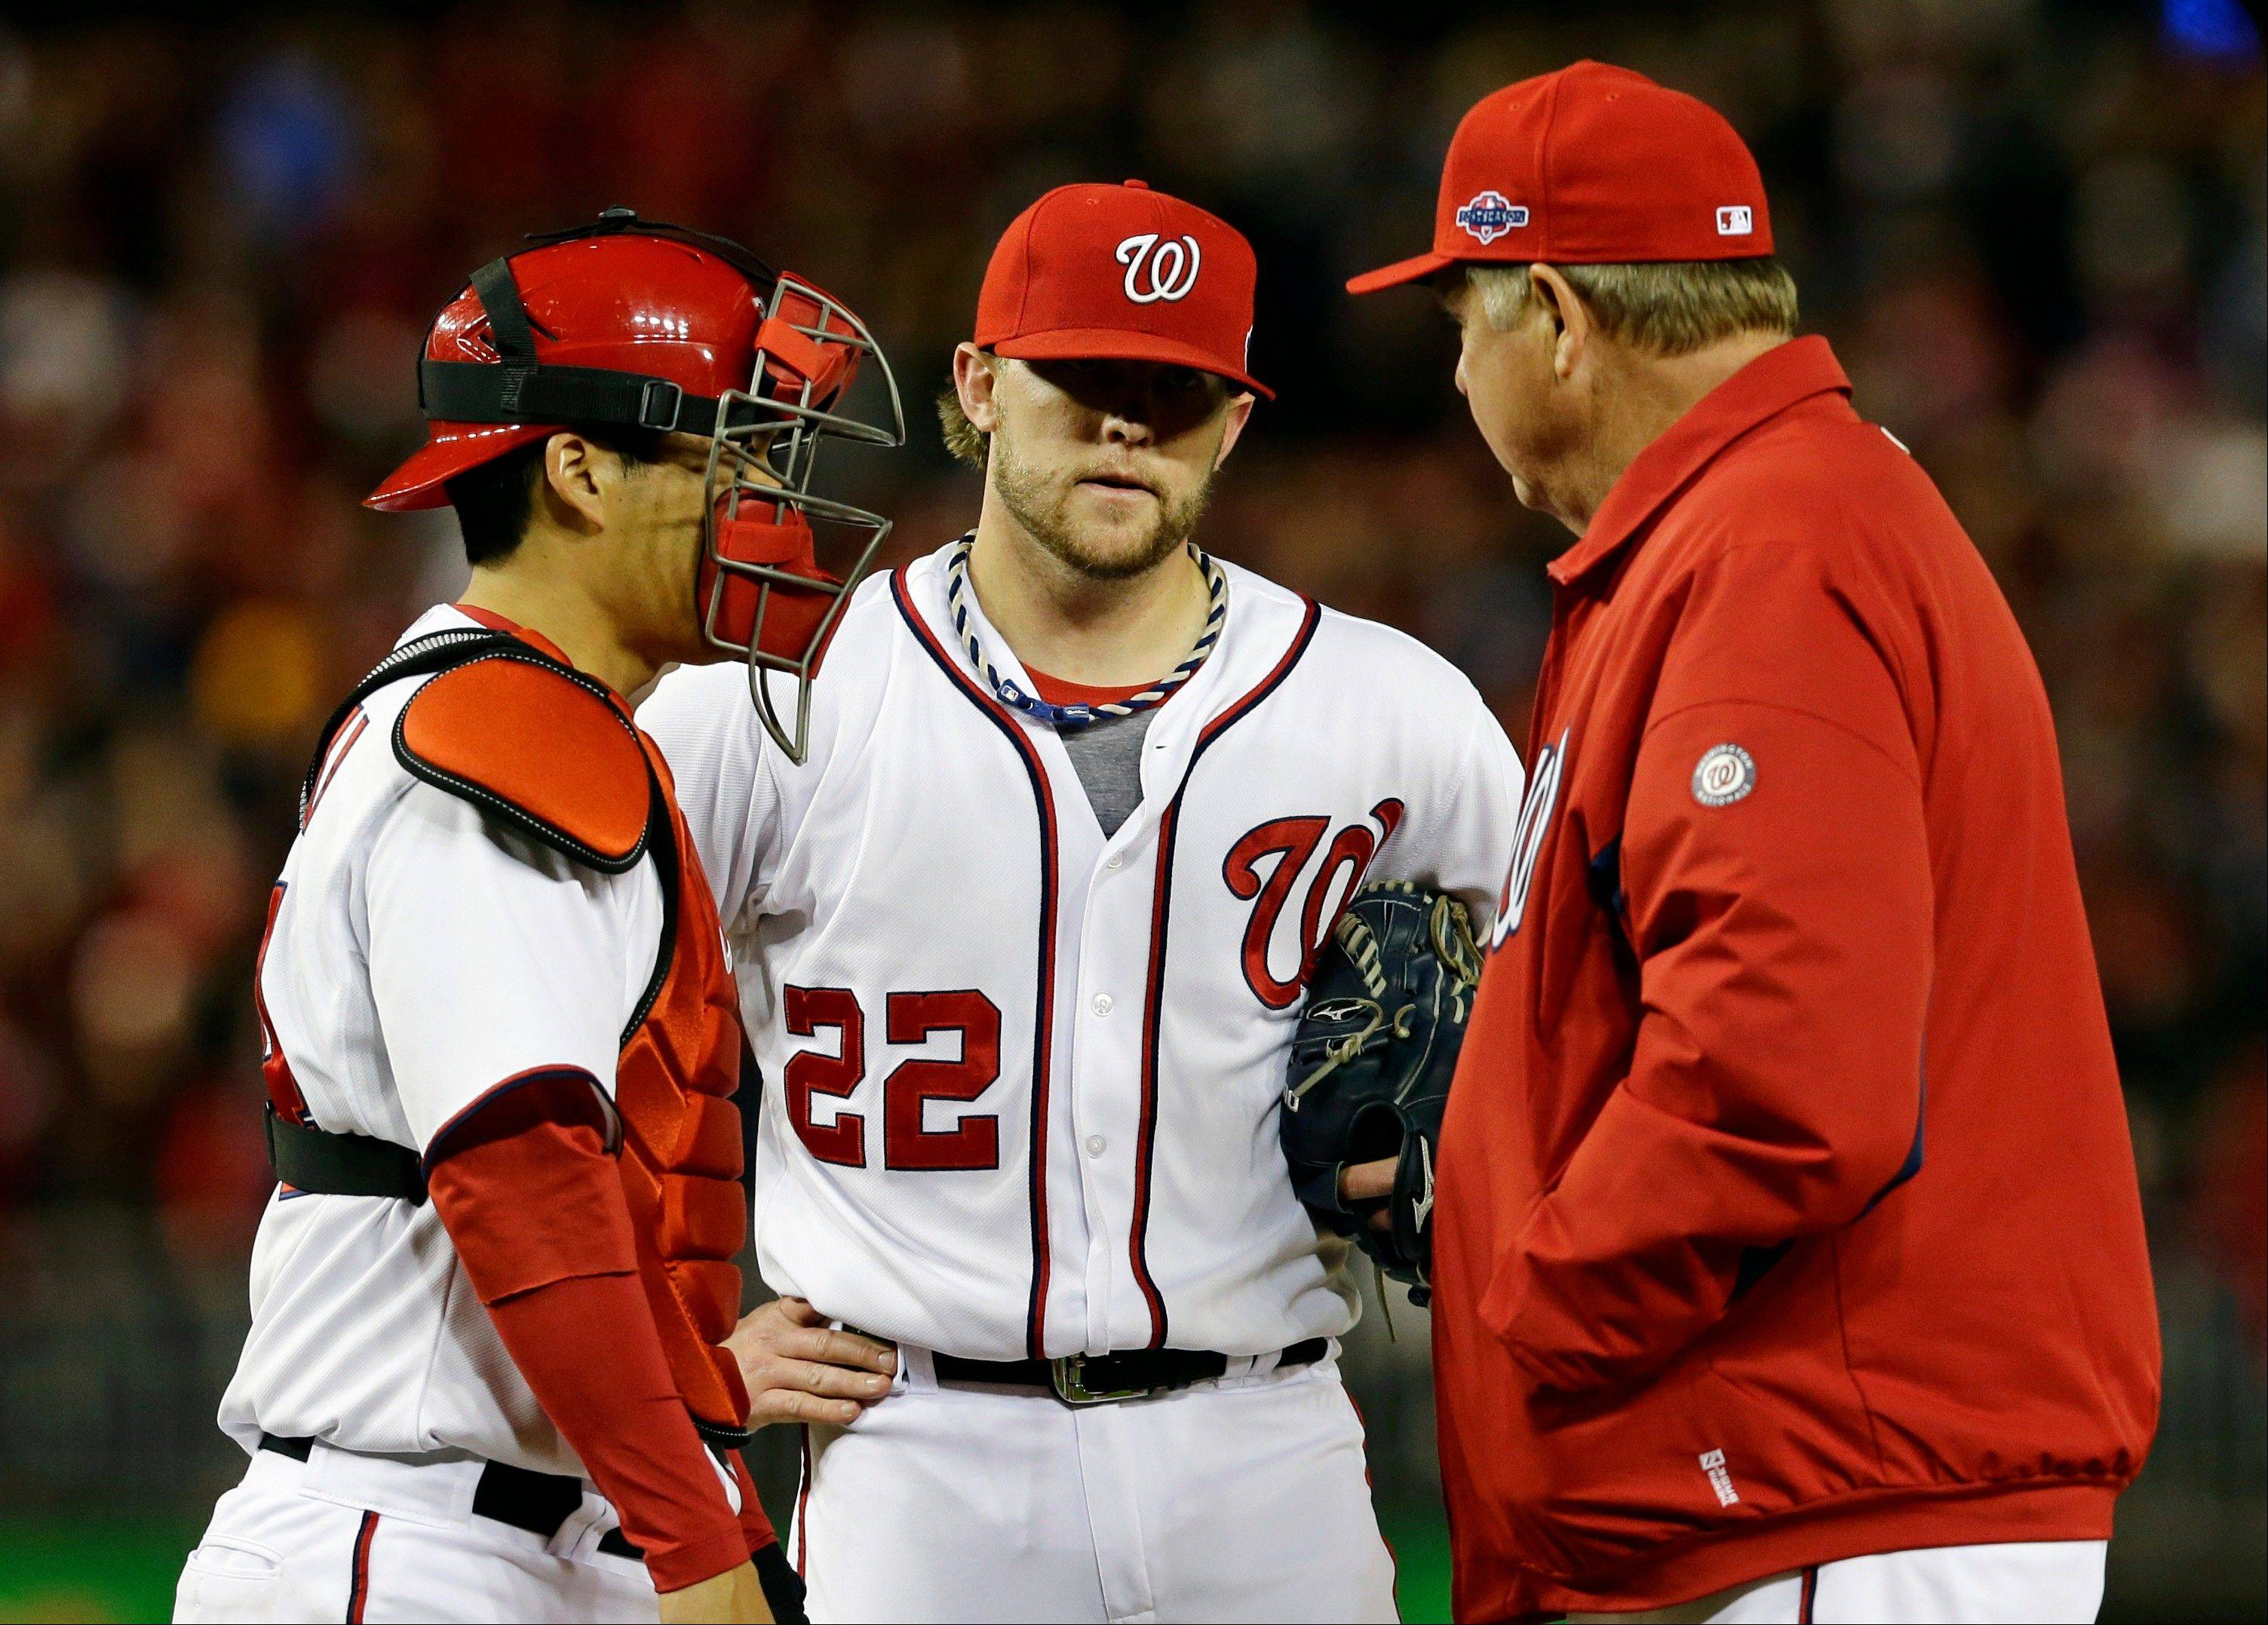 Washington Nationals relief pitcher Drew Storen speaks with catcher Kurt Suzuki, left, and pitching coach Steve McCatty in the ninth inning of Game 5. Storen twice had the Cardinals down to their last strike with two outs Friday night before giving up the lead.